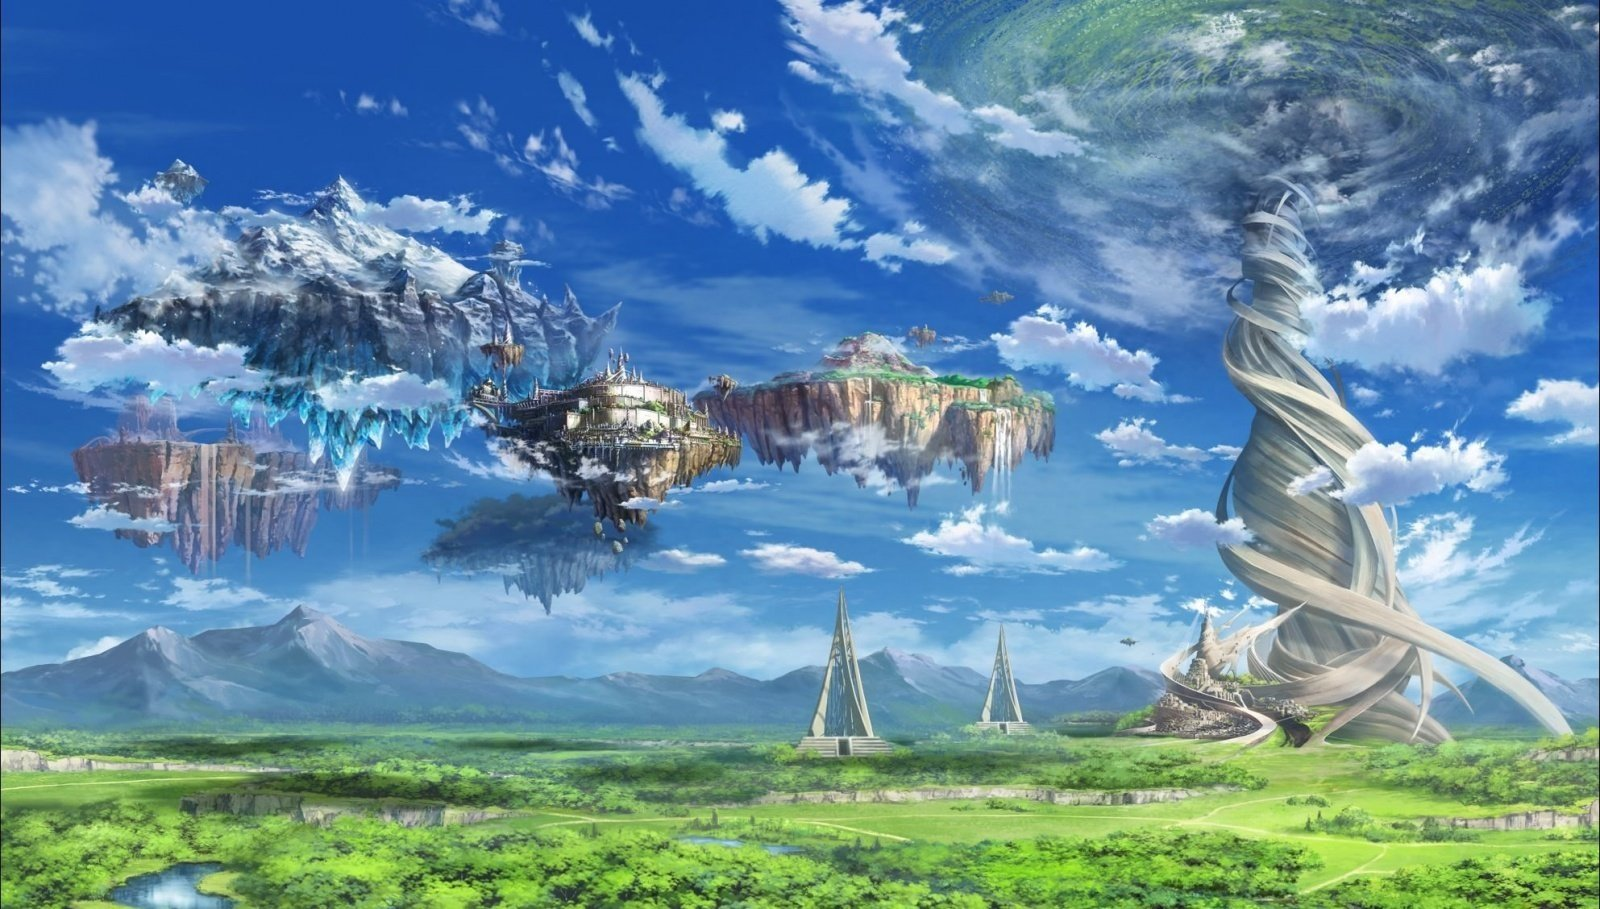 Sword Art Online Landscape 壁纸and 背景 1600x909 Id 647749